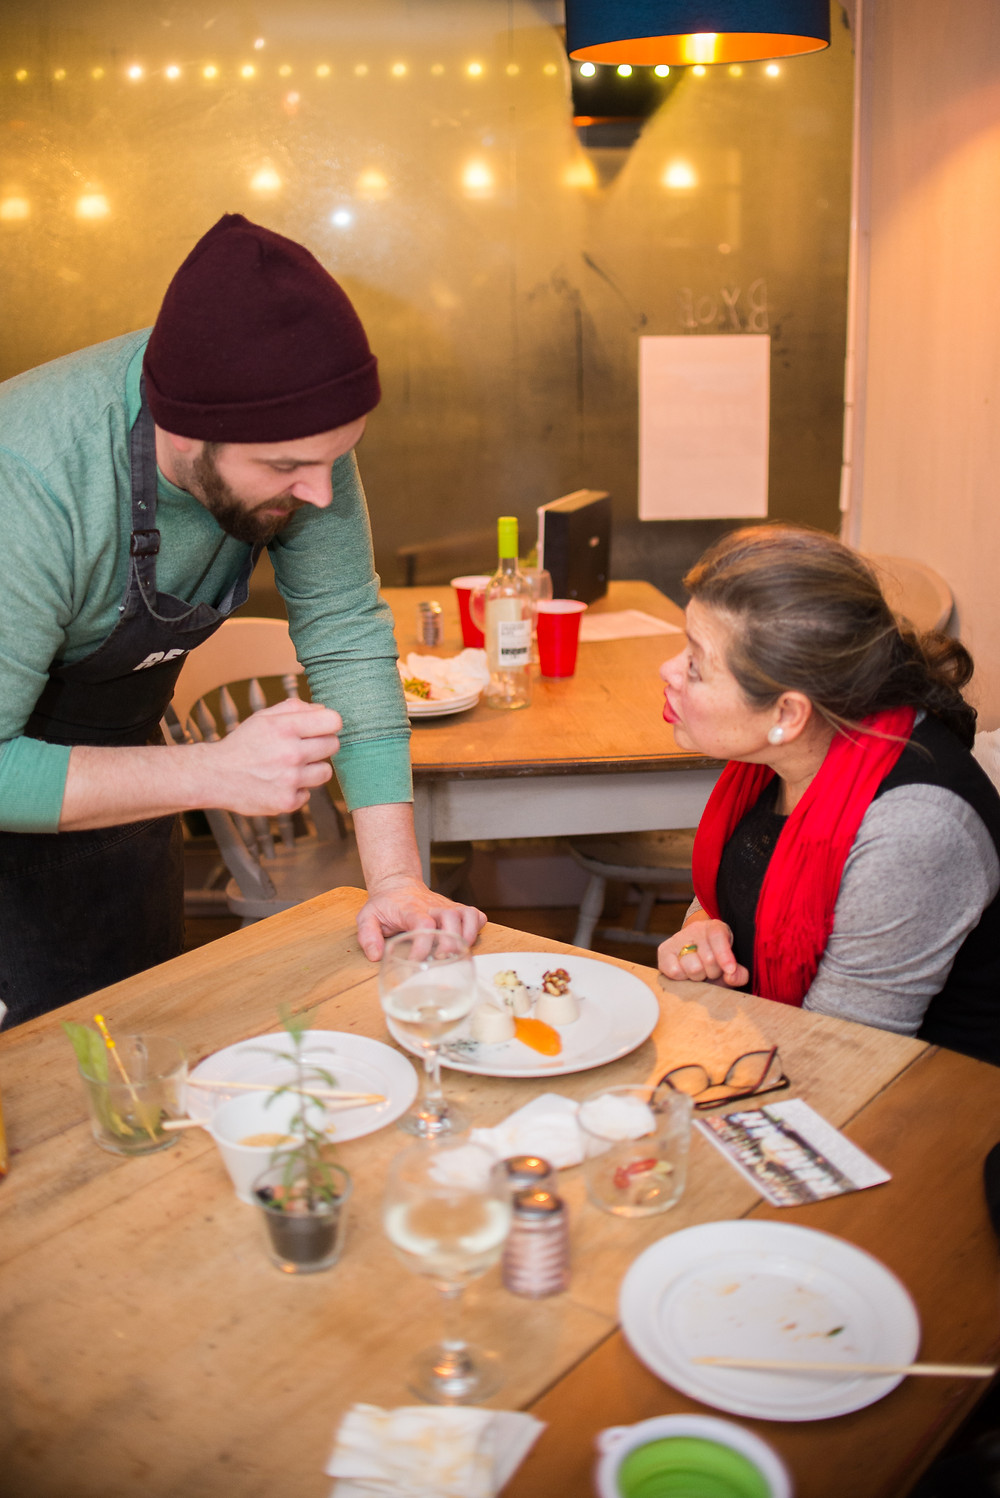 Rempah's chef George talking to a guest about his plate of vegan cheesecake.